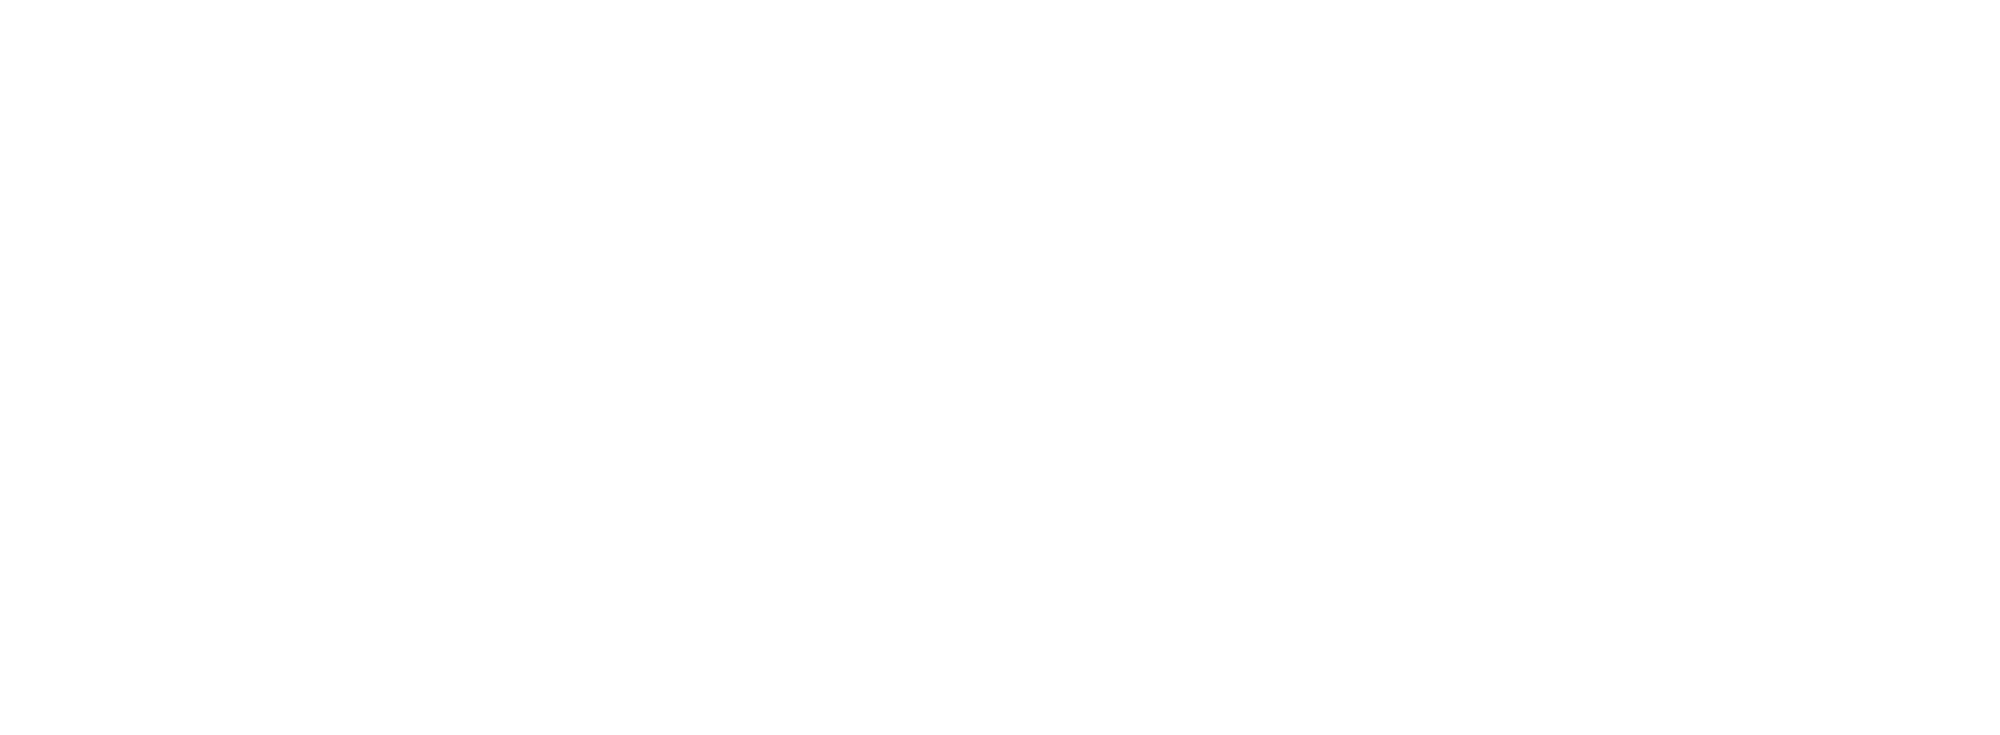 CUSTOMER-logo-white.png